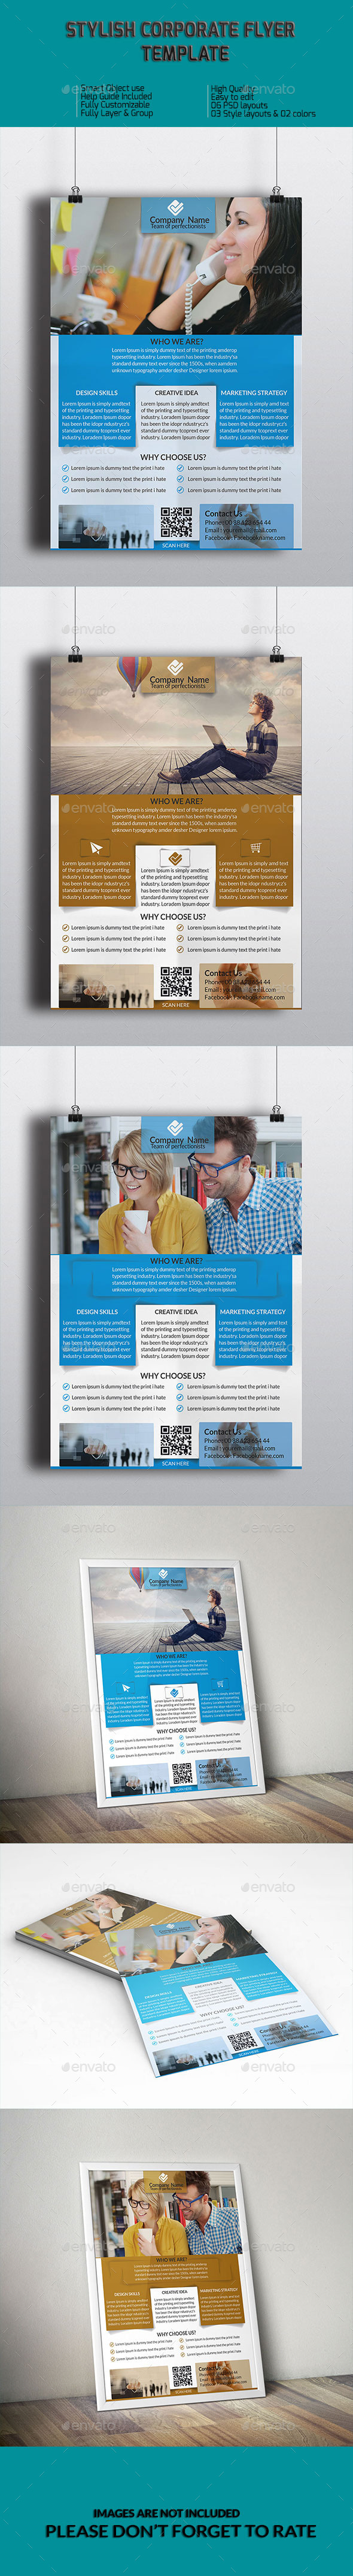 Stylish Corporate Flyer Template - Corporate Flyers